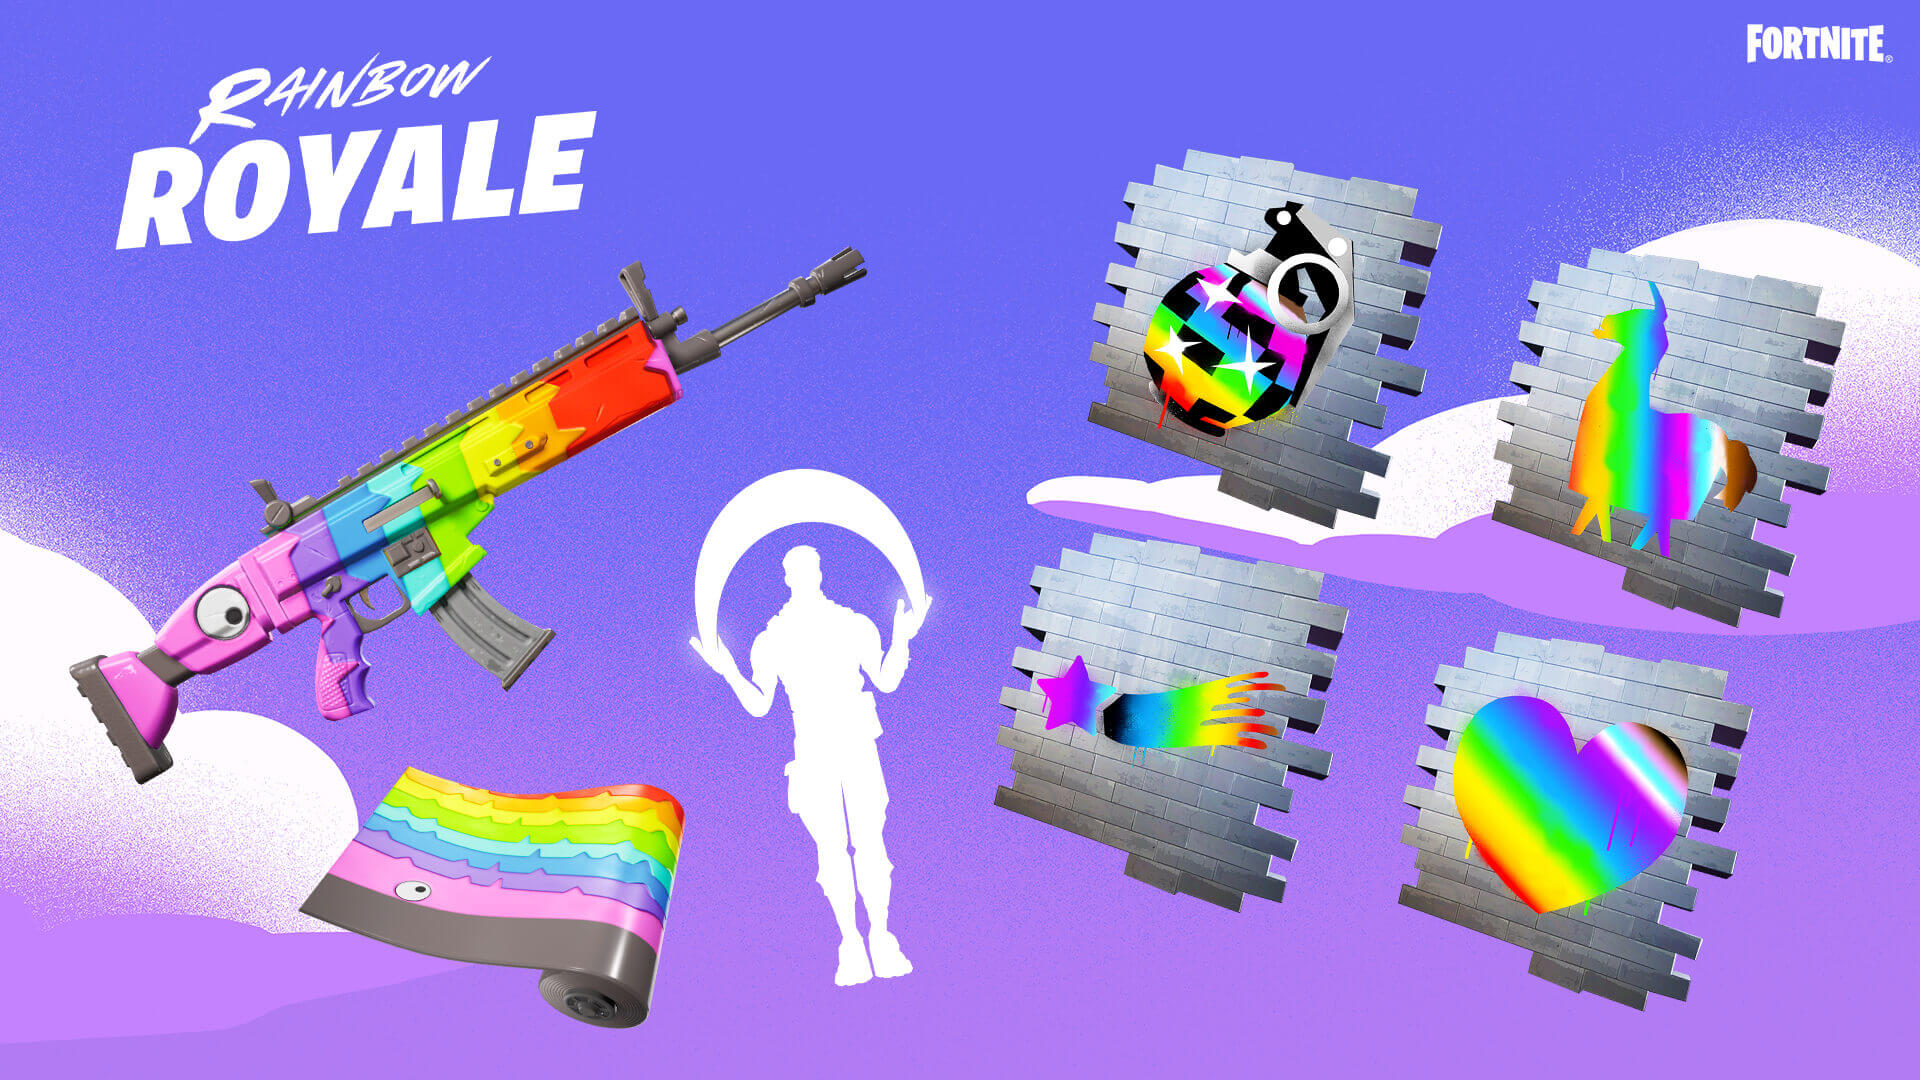 Fortnite Launches New Rainbow Royale Event